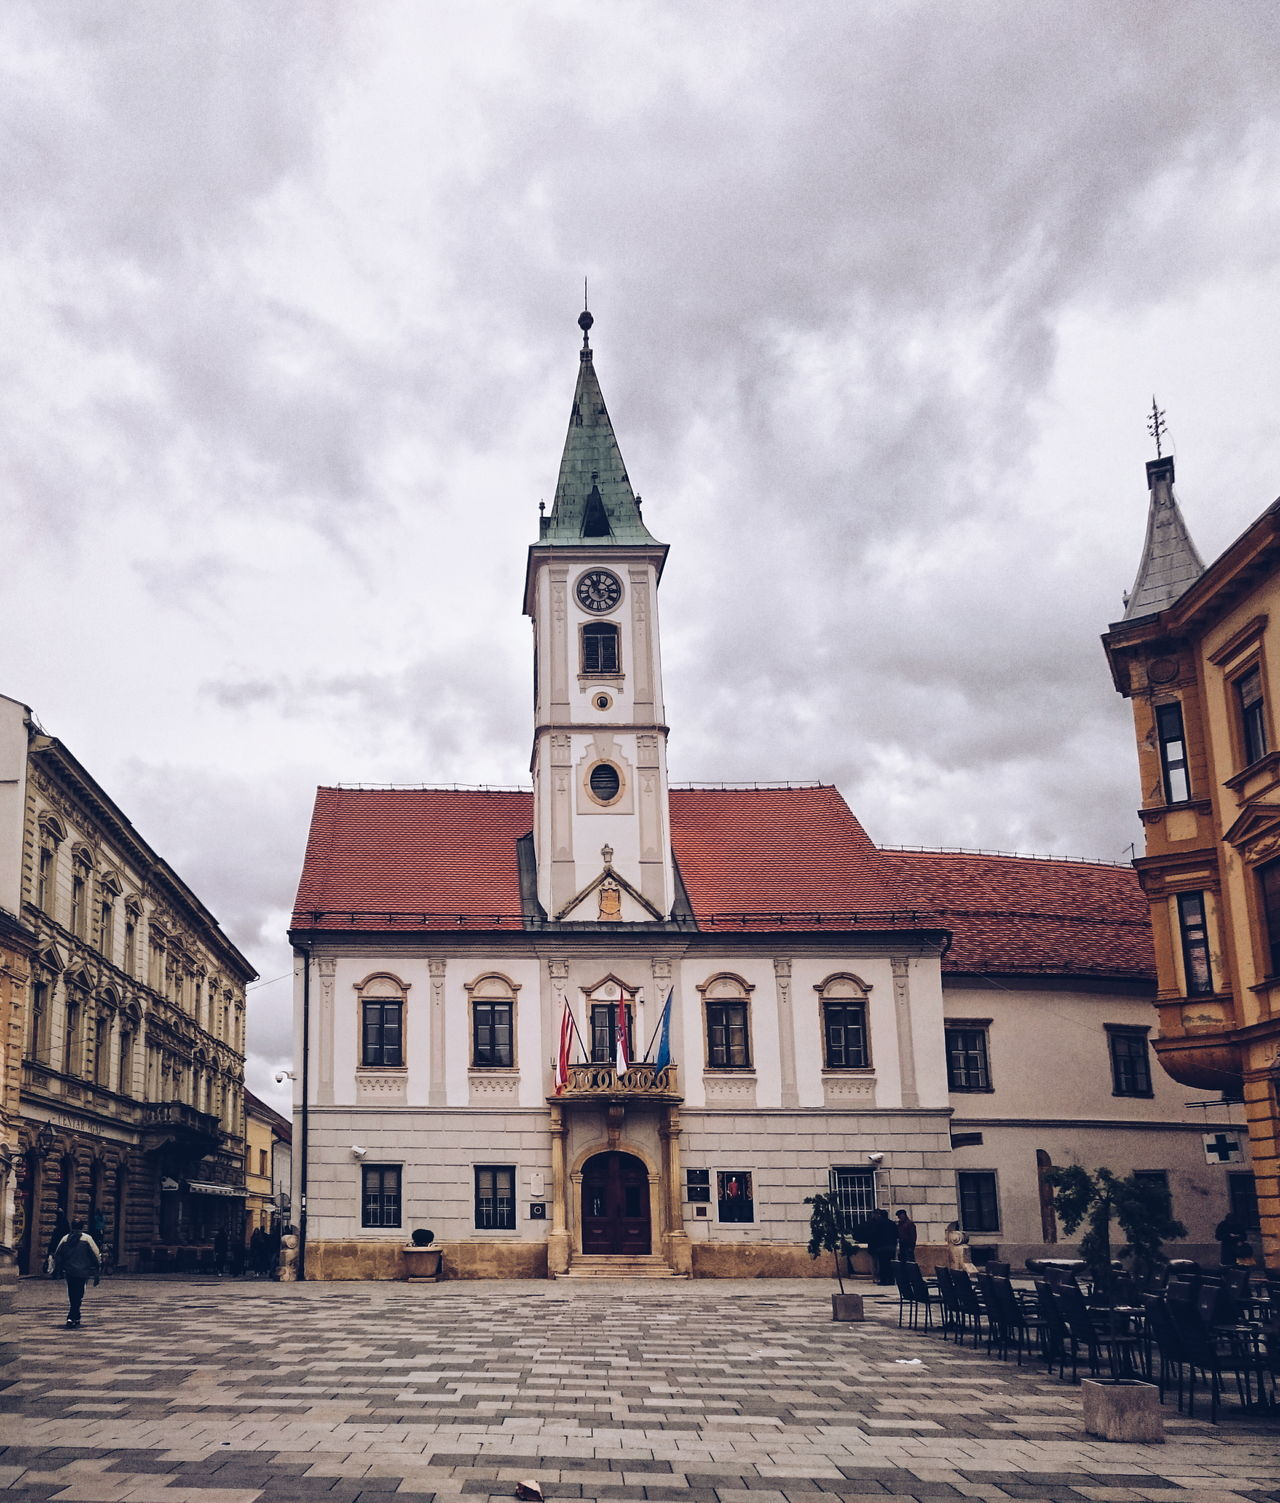 Varazdin square Taking Photos Check This Out Hanging Out Hello World Relaxing Streetphotography Street Urban Lifestyle Street Photography Urban Landscape Urban Urbanphotography Urban Photography Urban Architecture Architecture Architecture_collection Architectural Detail ArchiTexture Towm Europe Europe Trip Croatia Square Shapes And Lines The Architect - 2016 EyeEm Awards